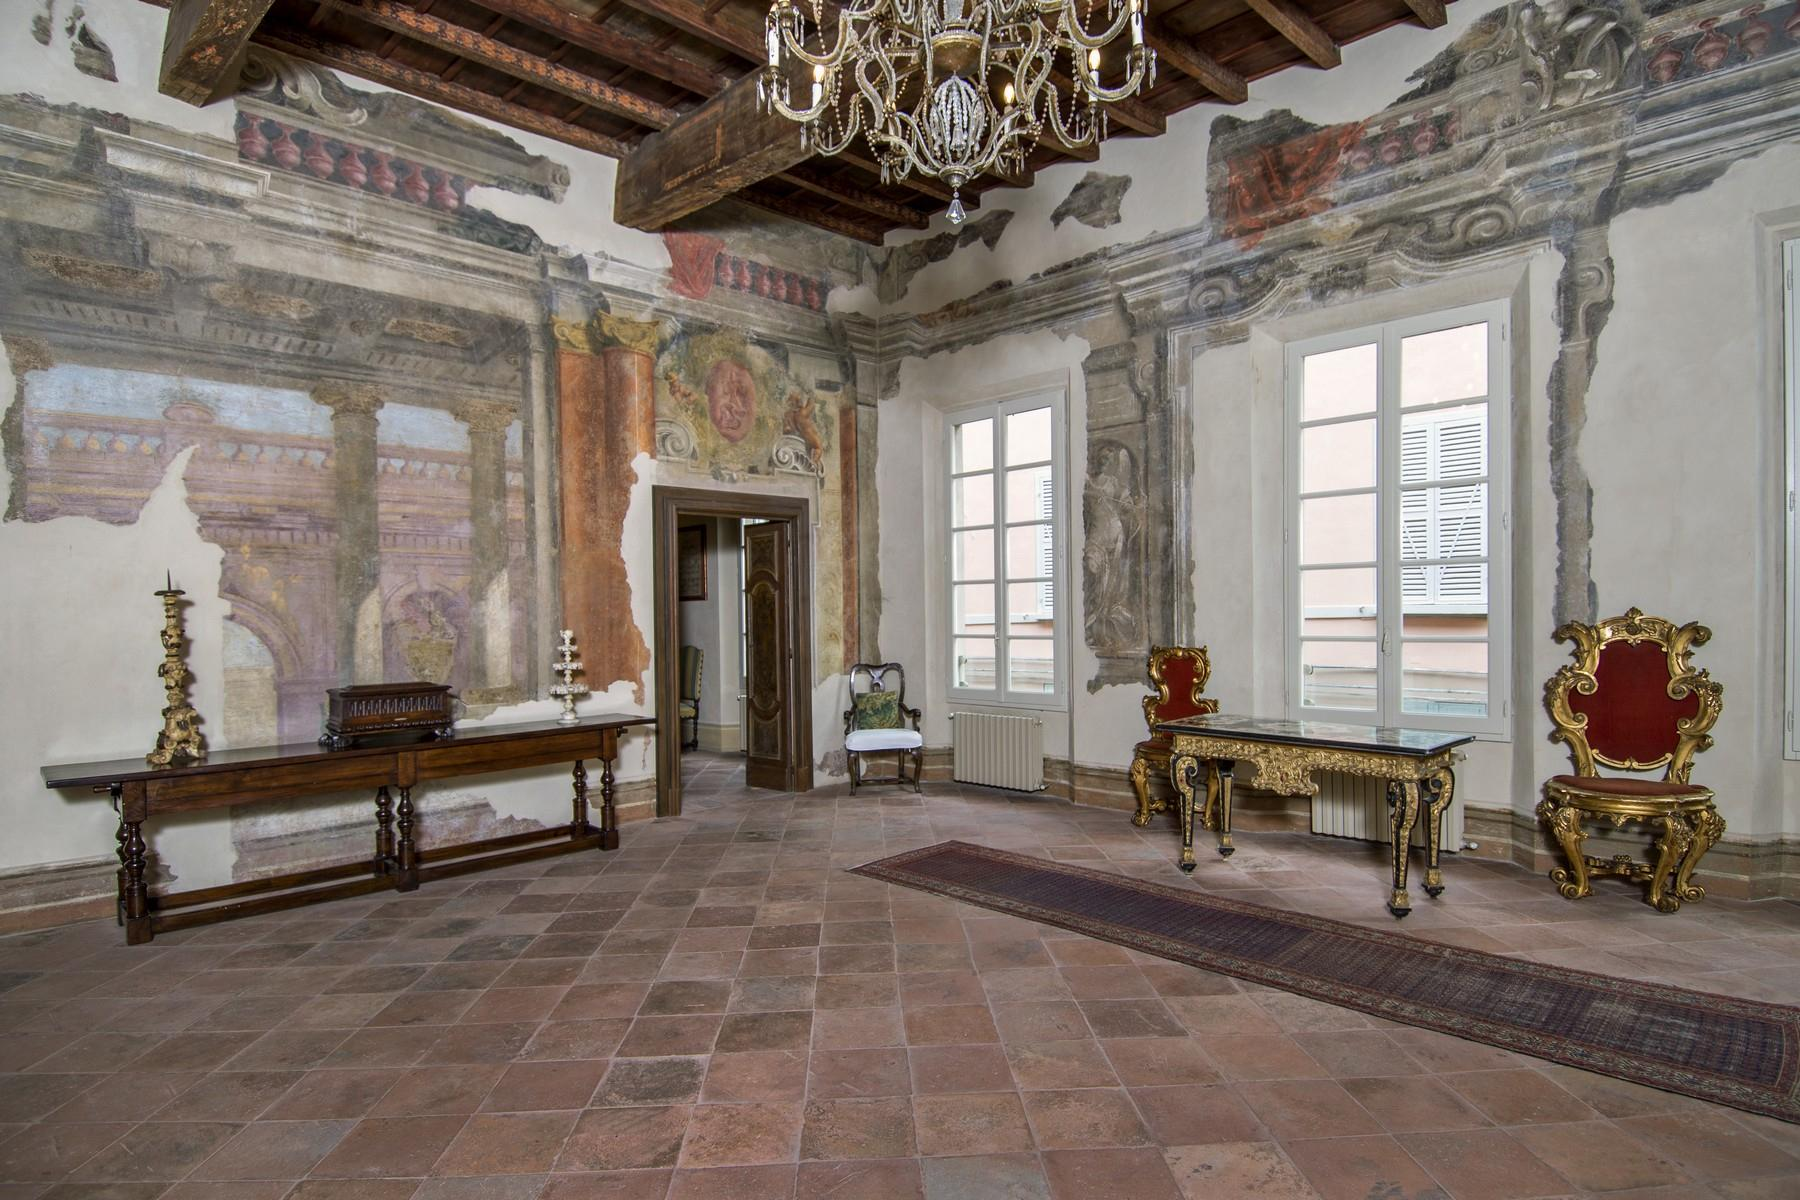 Magnificent historic palace in the heart of Reggio Emilia - 13